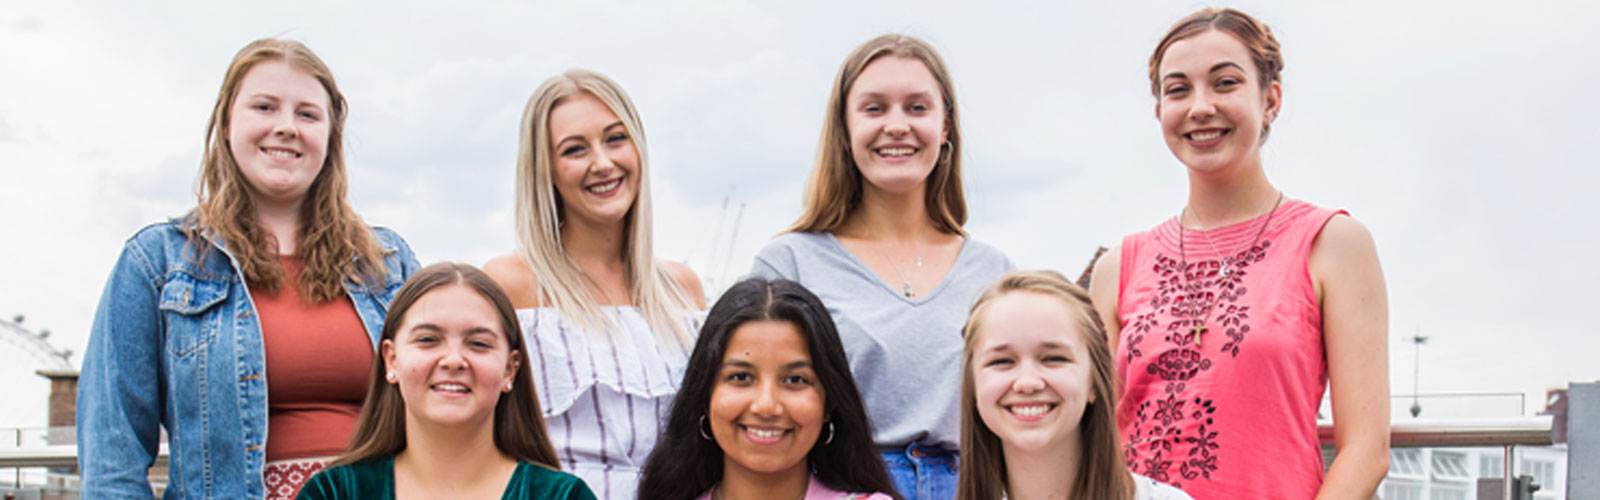 Meet the team of 2018/19 gap year volunteers